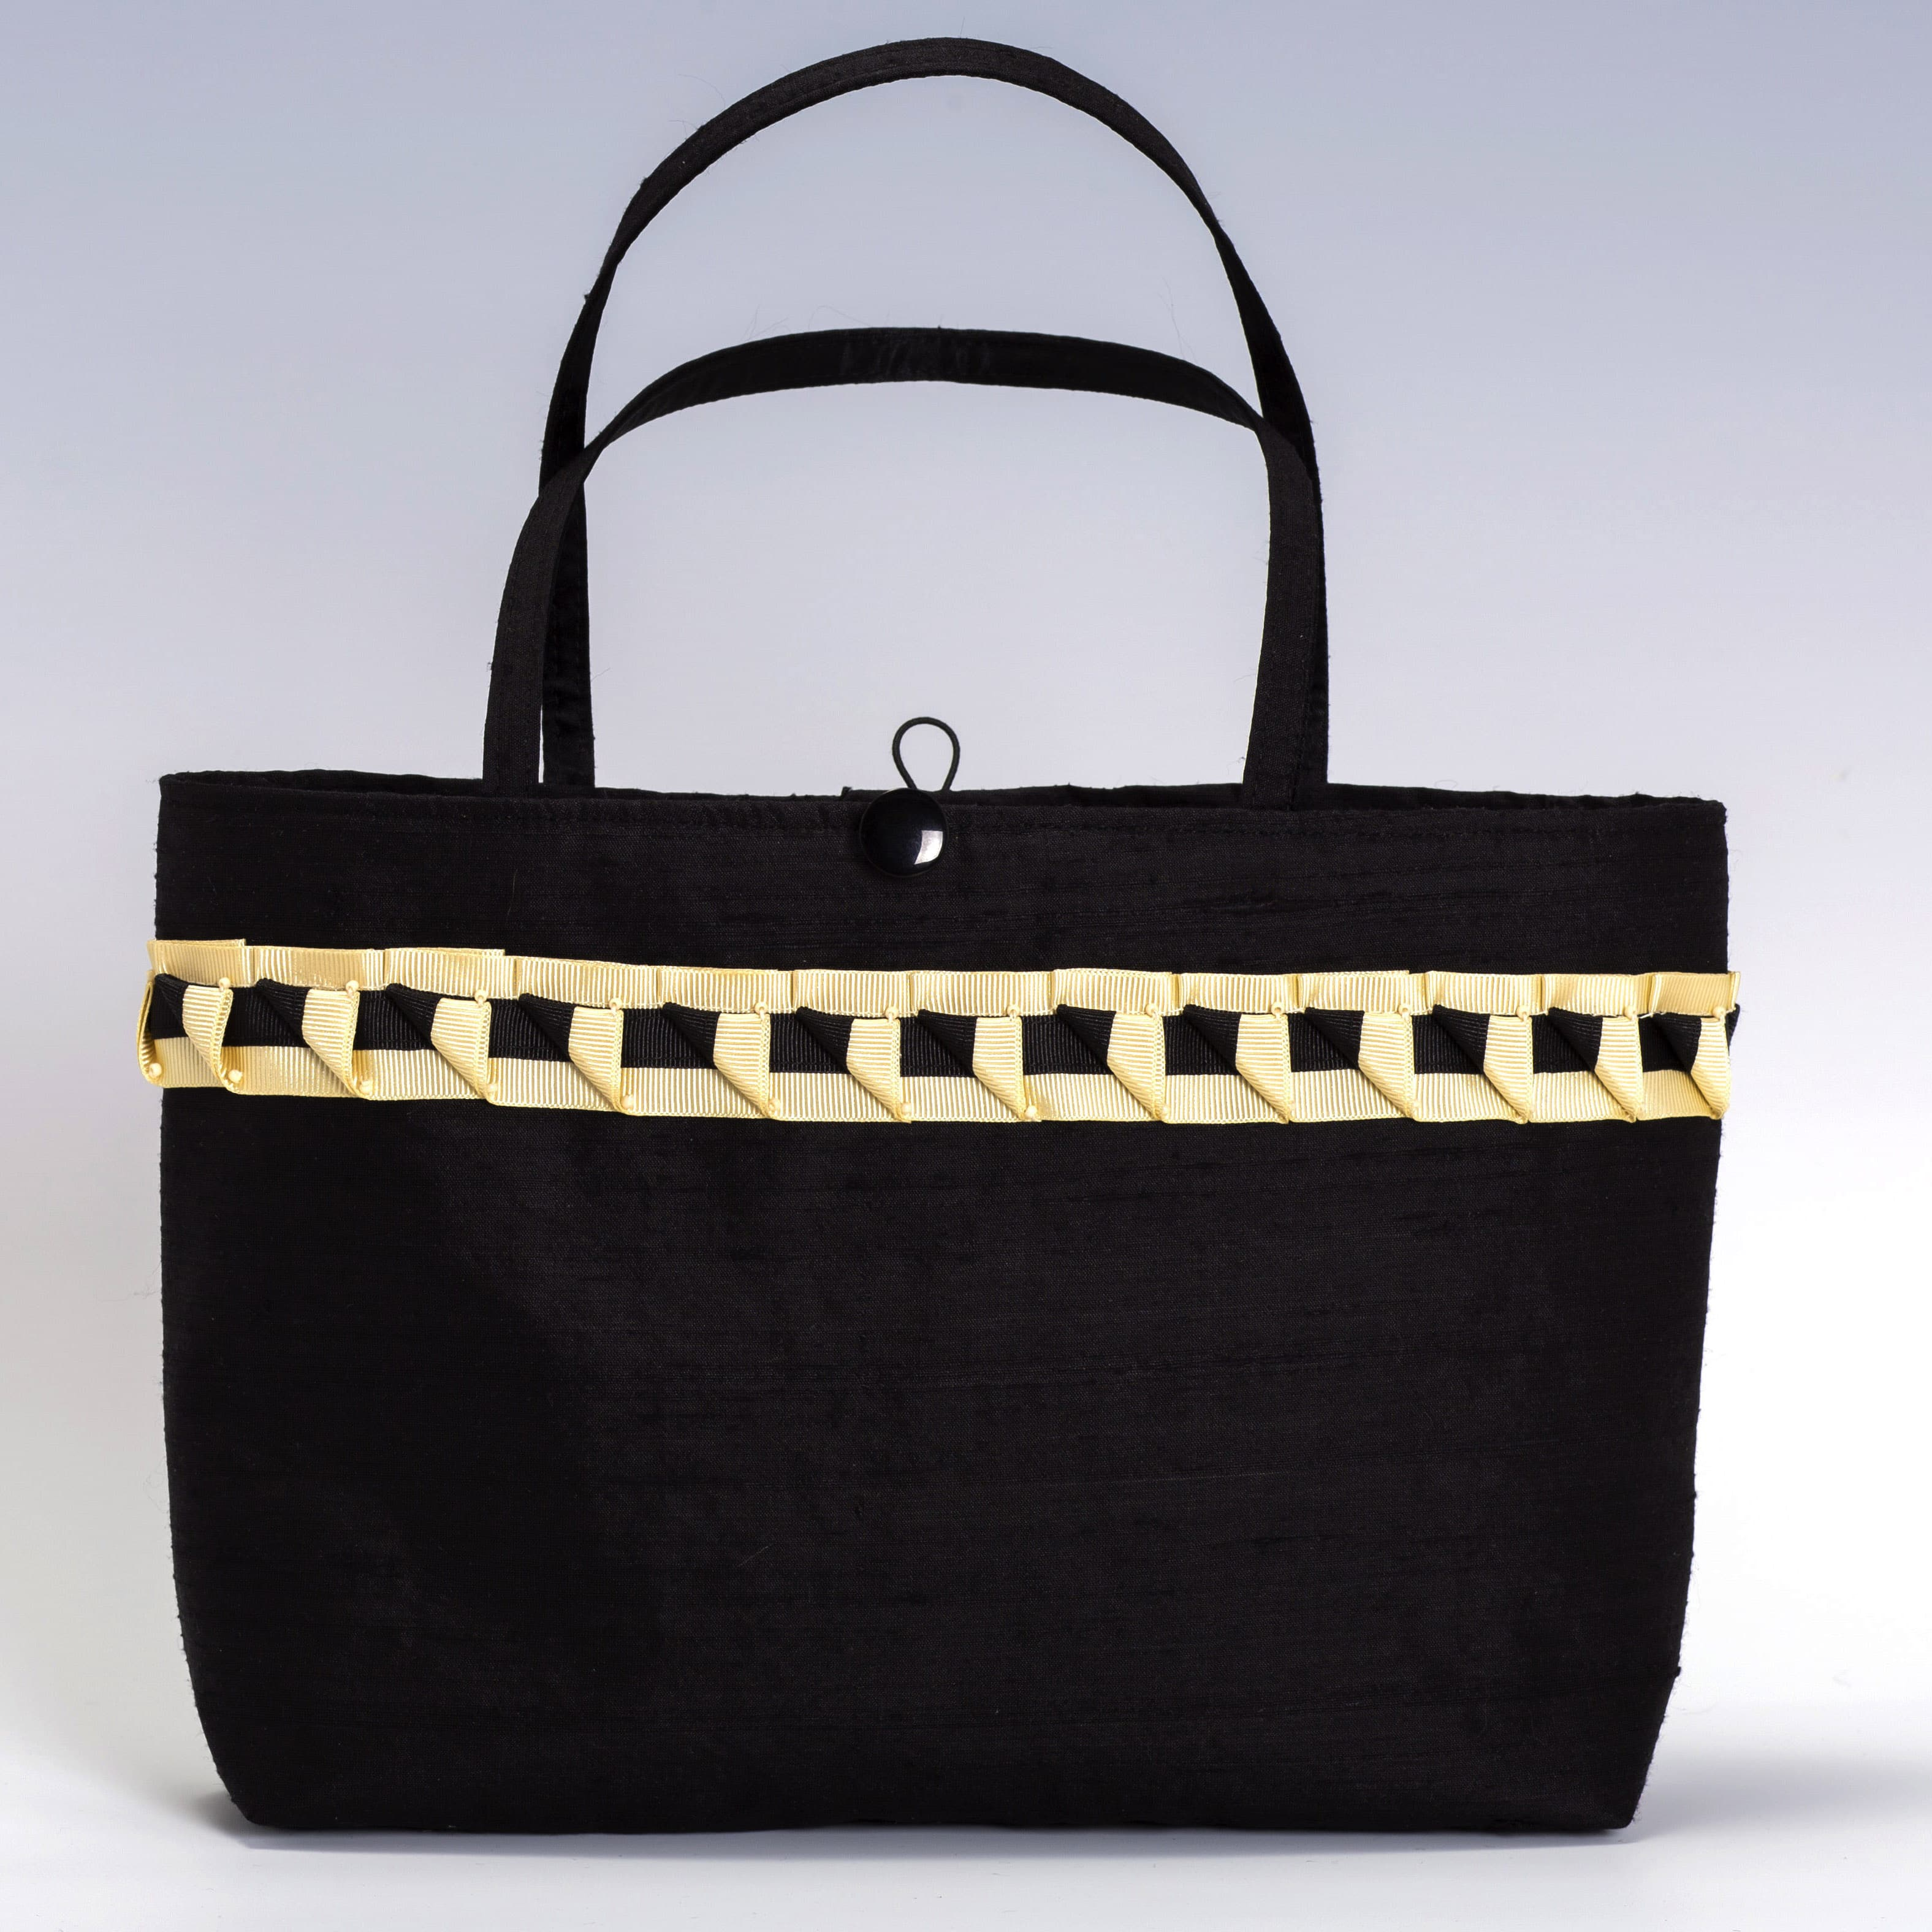 black satin handbag with cream and black trim